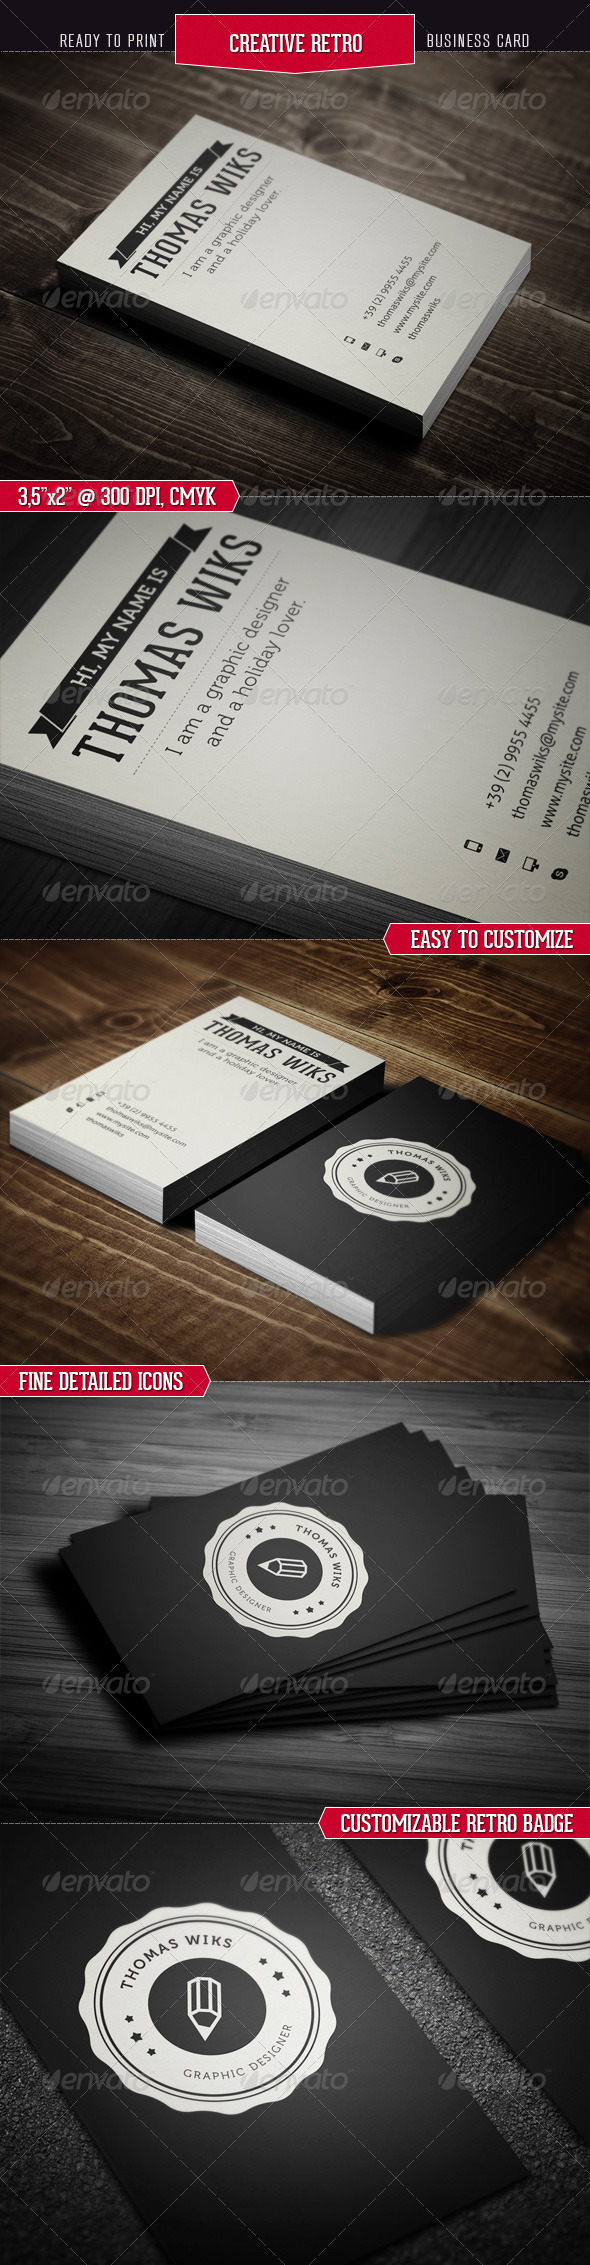 Creative Retro Business Card - Corporate Business Cards